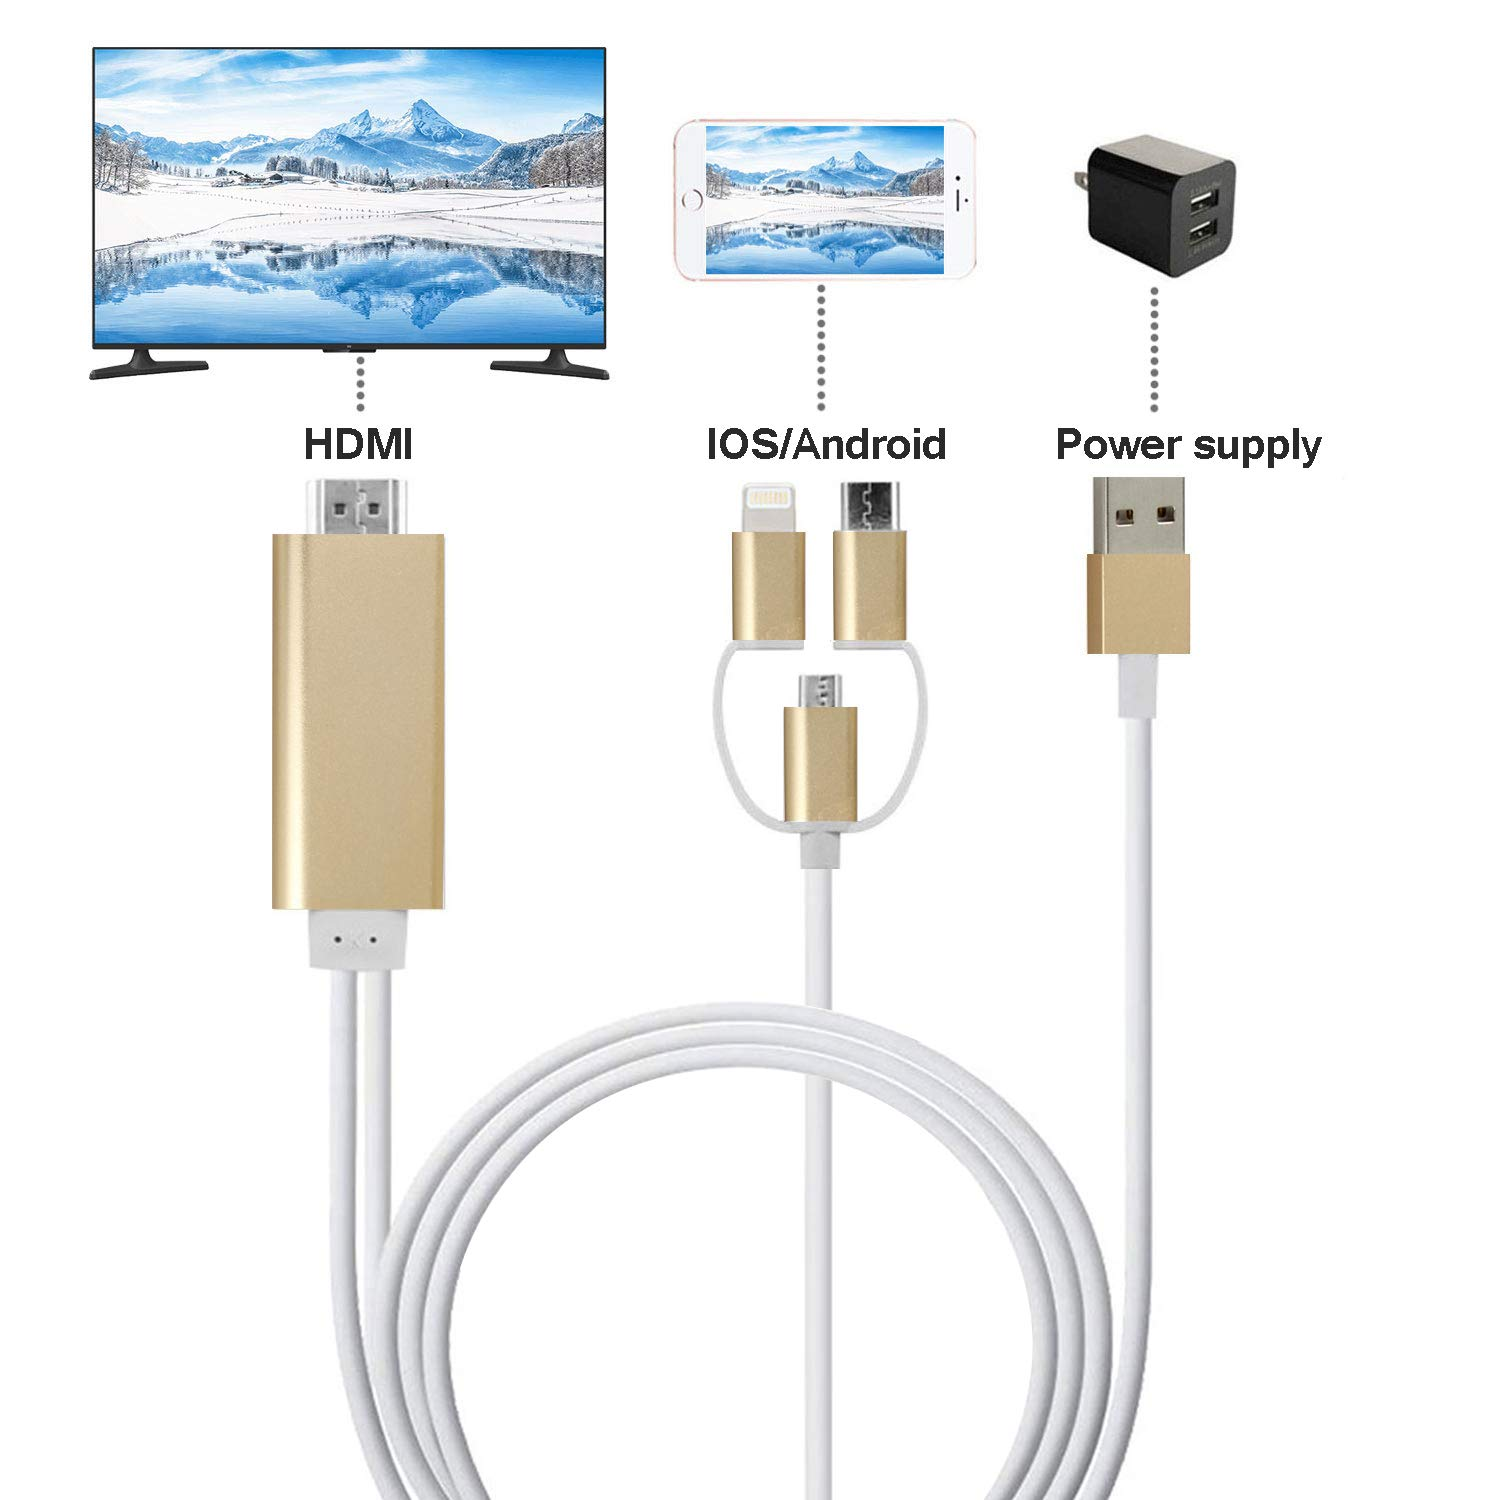 ZFKJERS 3 in 1 Phone to HDMI Cable, Mirroring Cellphone Screen to TV/Projector/Monitor Adapter, 1080P Resolution for iOS and Android Devices (Gold)